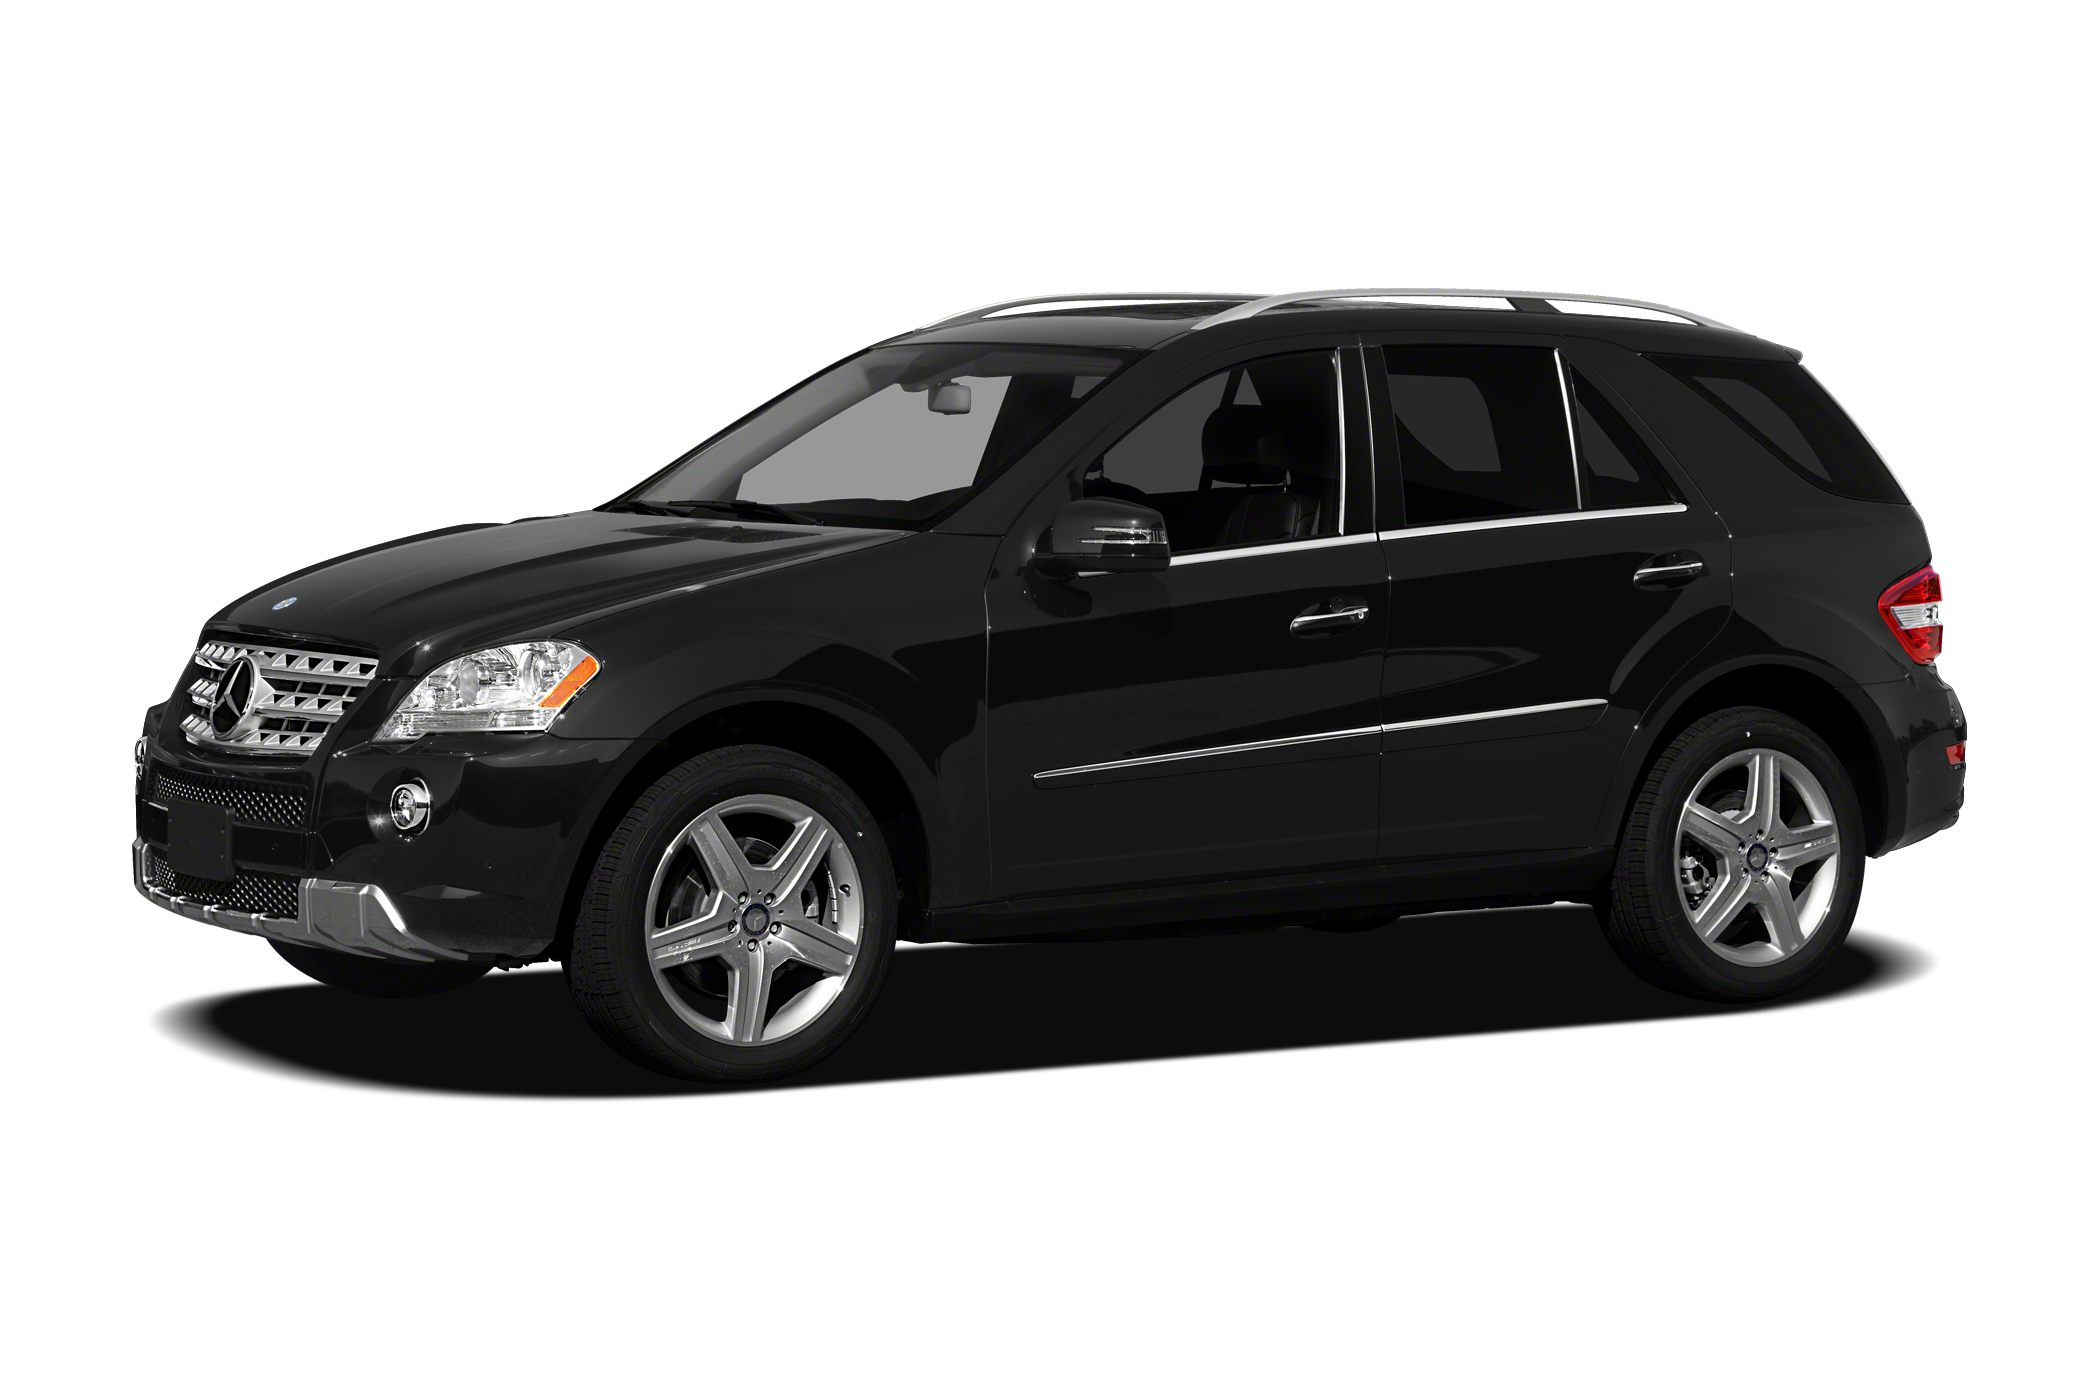 2009 Mercedes-Benz M-Class ML550 4MATIC SUV for sale in Chicago for $0 with 53,342 miles